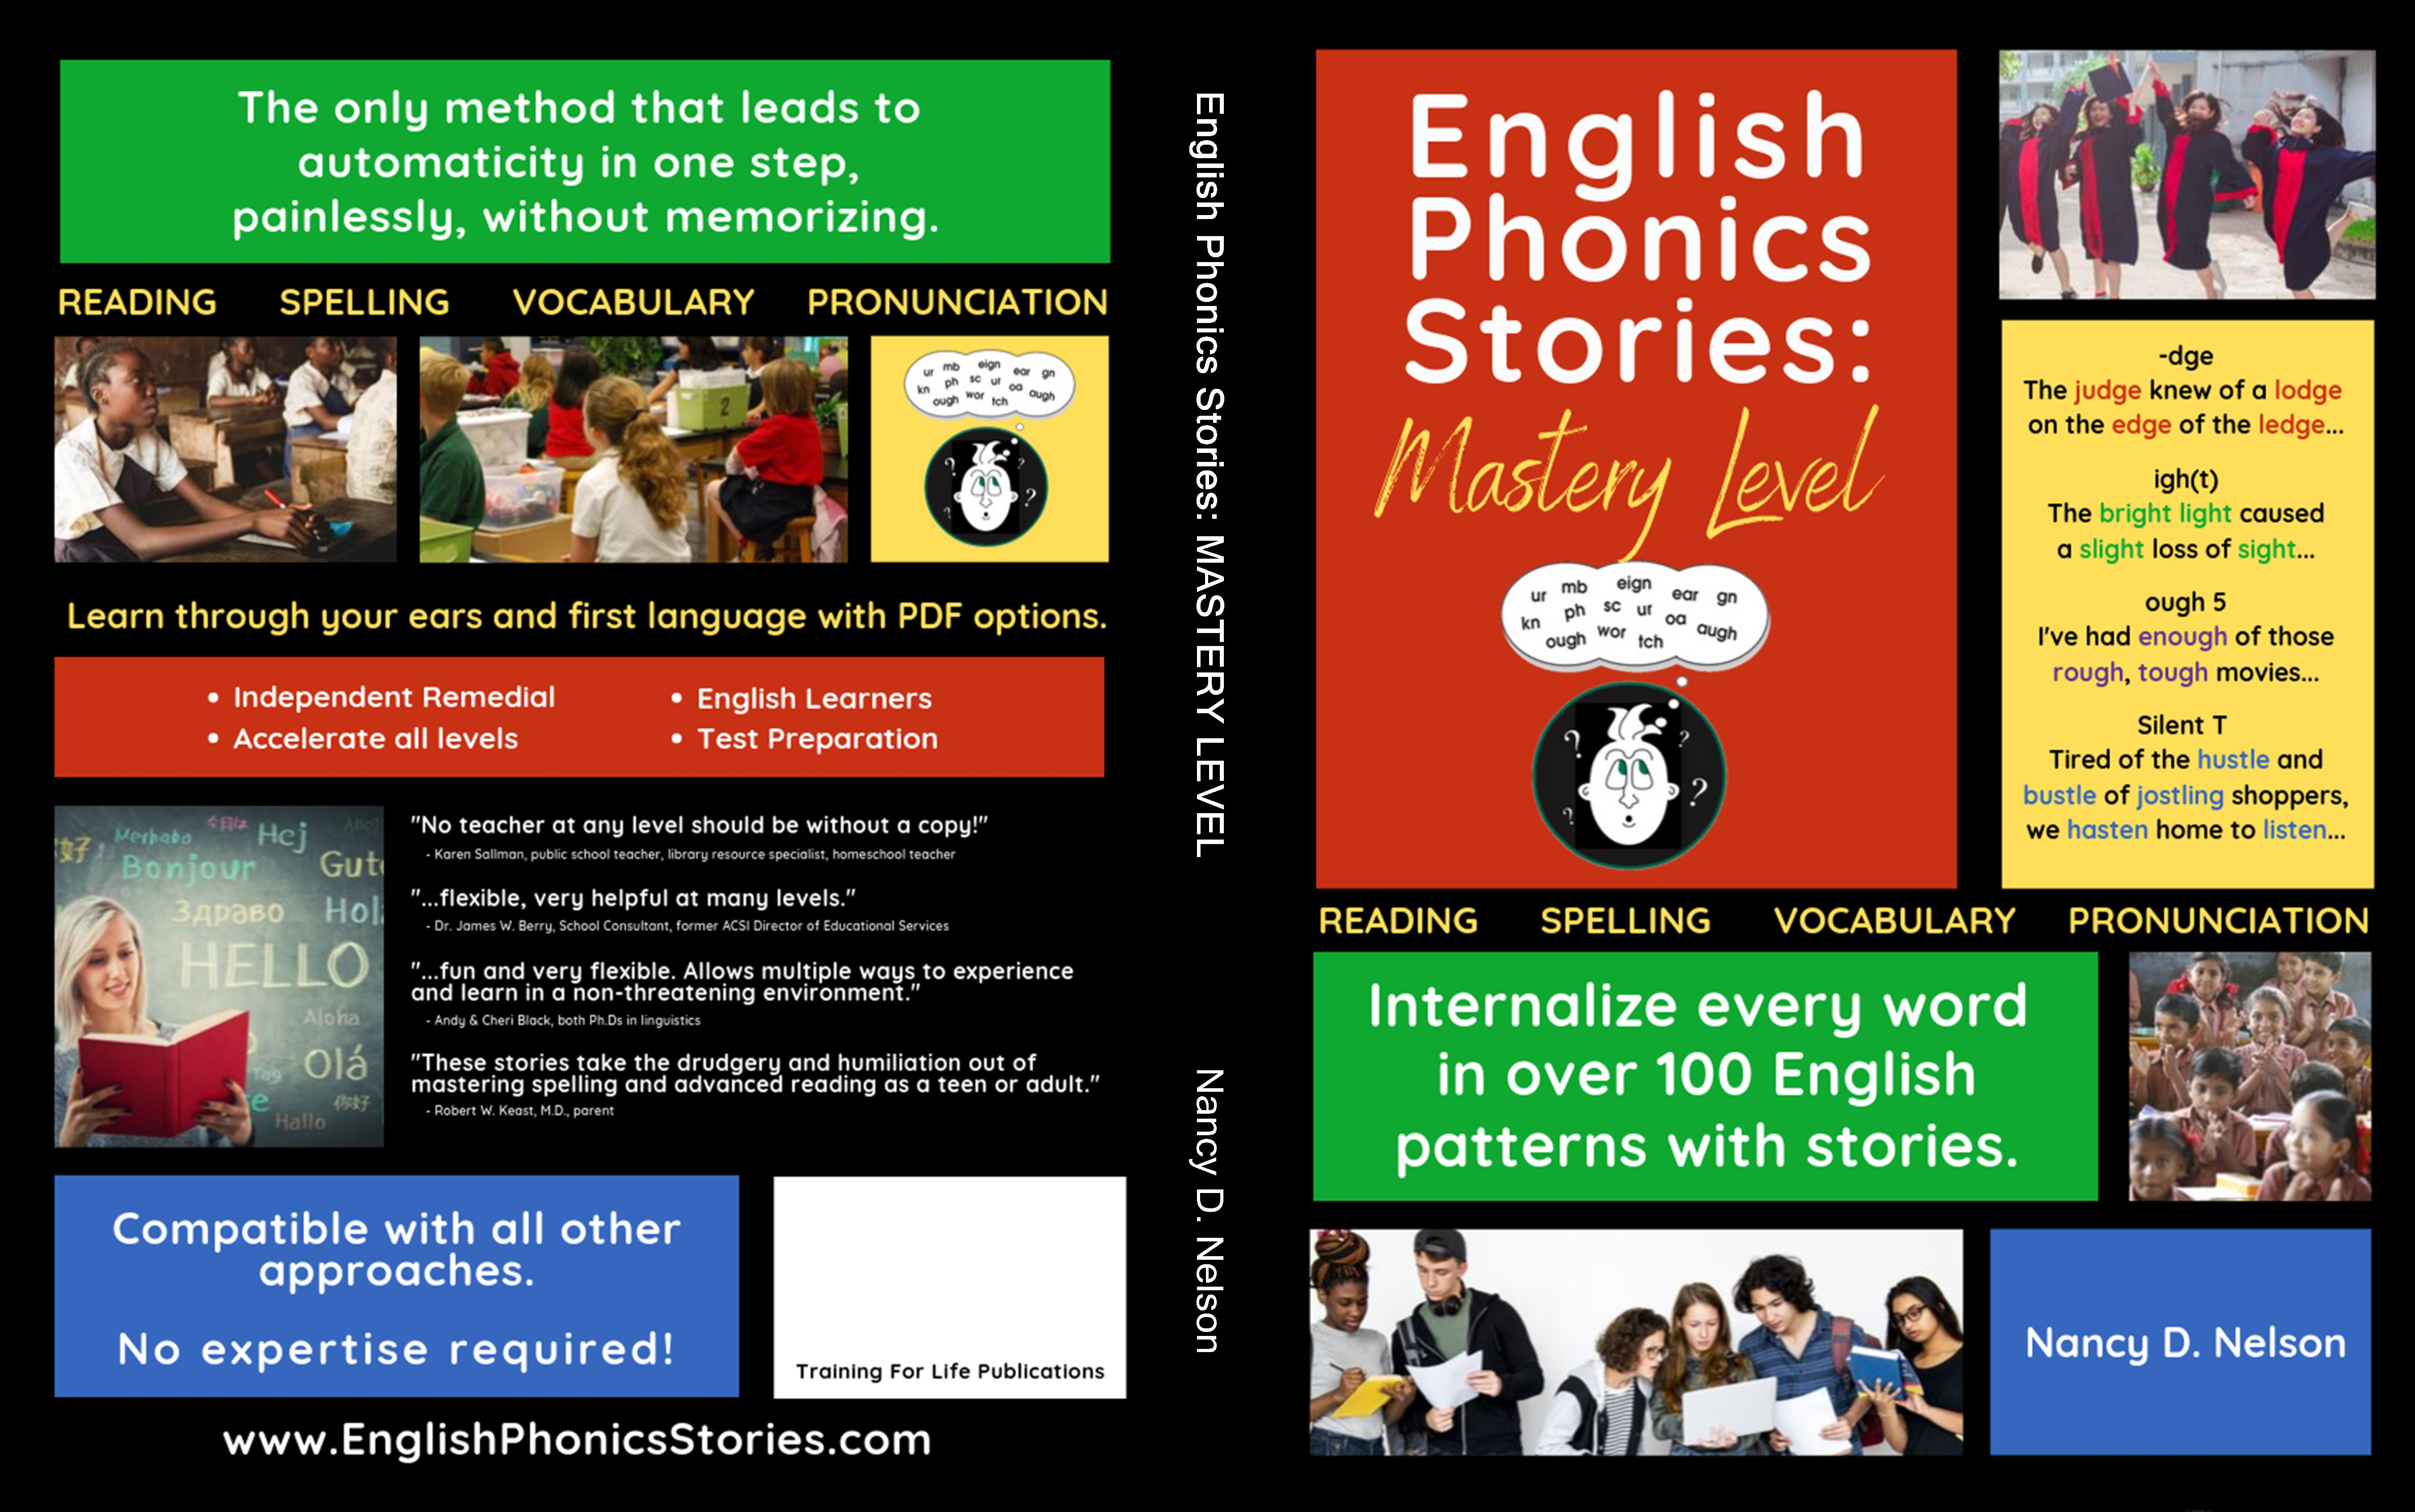 English Phonics Stories: MASTERY LEVEL - MANUAL cover image